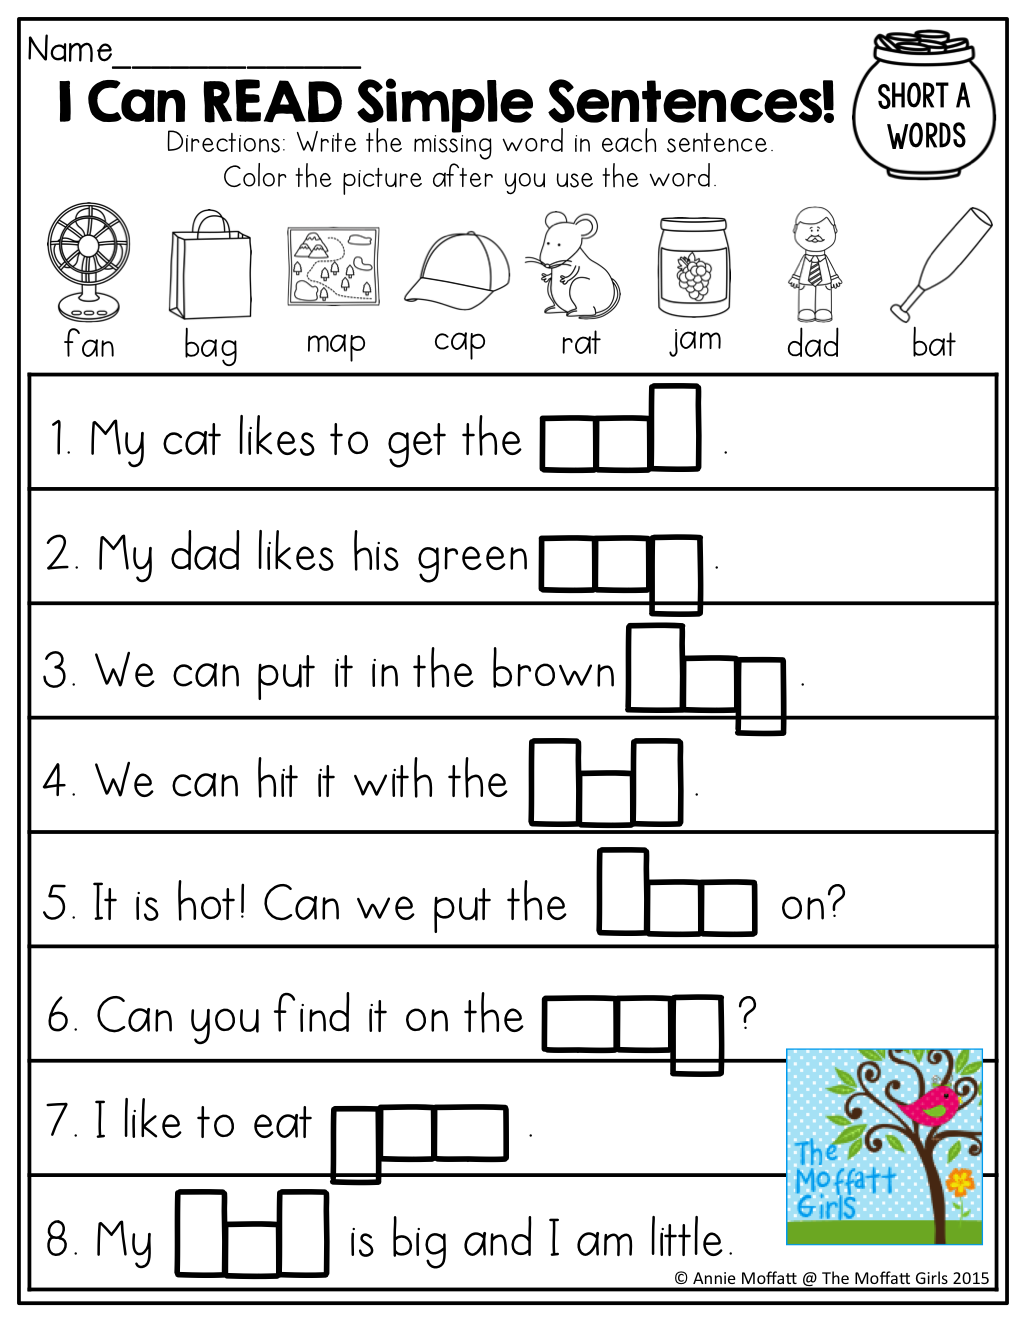 hight resolution of I Can READ! Simple Sentences with CVC words to fill in!   Word family  worksheets